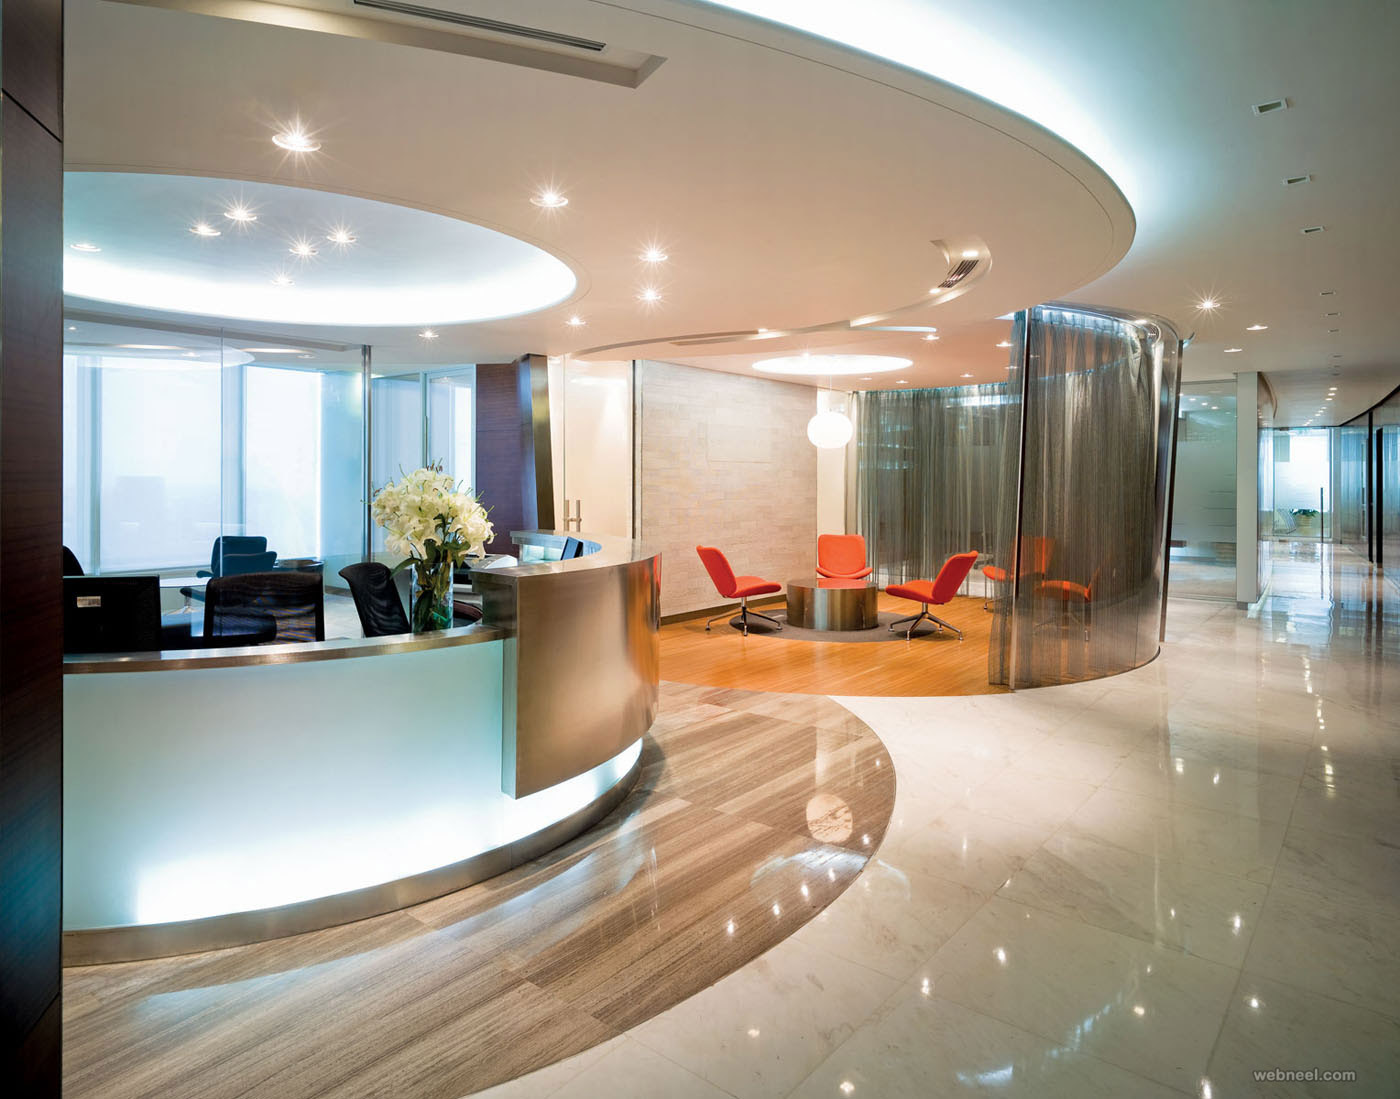 Modern Office Design In Luxury Modern Office Design Idea Back To Article Image I